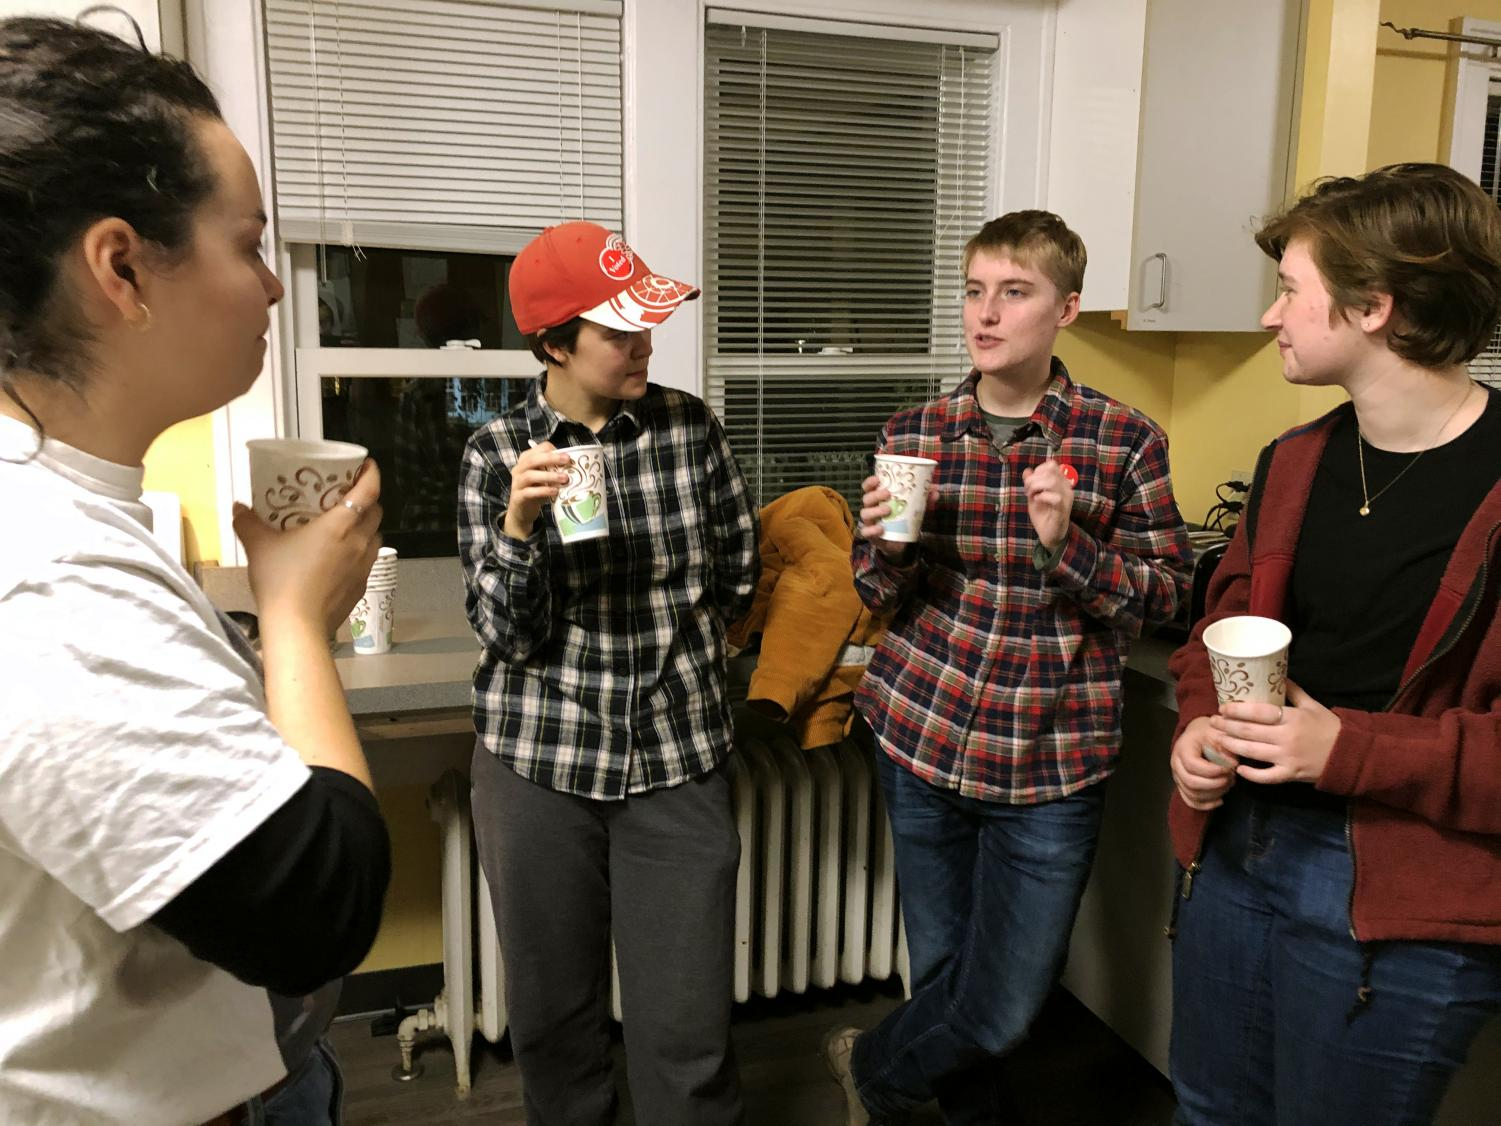 Zoe Allen '22, Daria Chamness '21, Erin Webb '21 and Teddy Holt '22 chat and drink swamp tea in the Cultural House kitchen. Photo by Lily Denehy '22